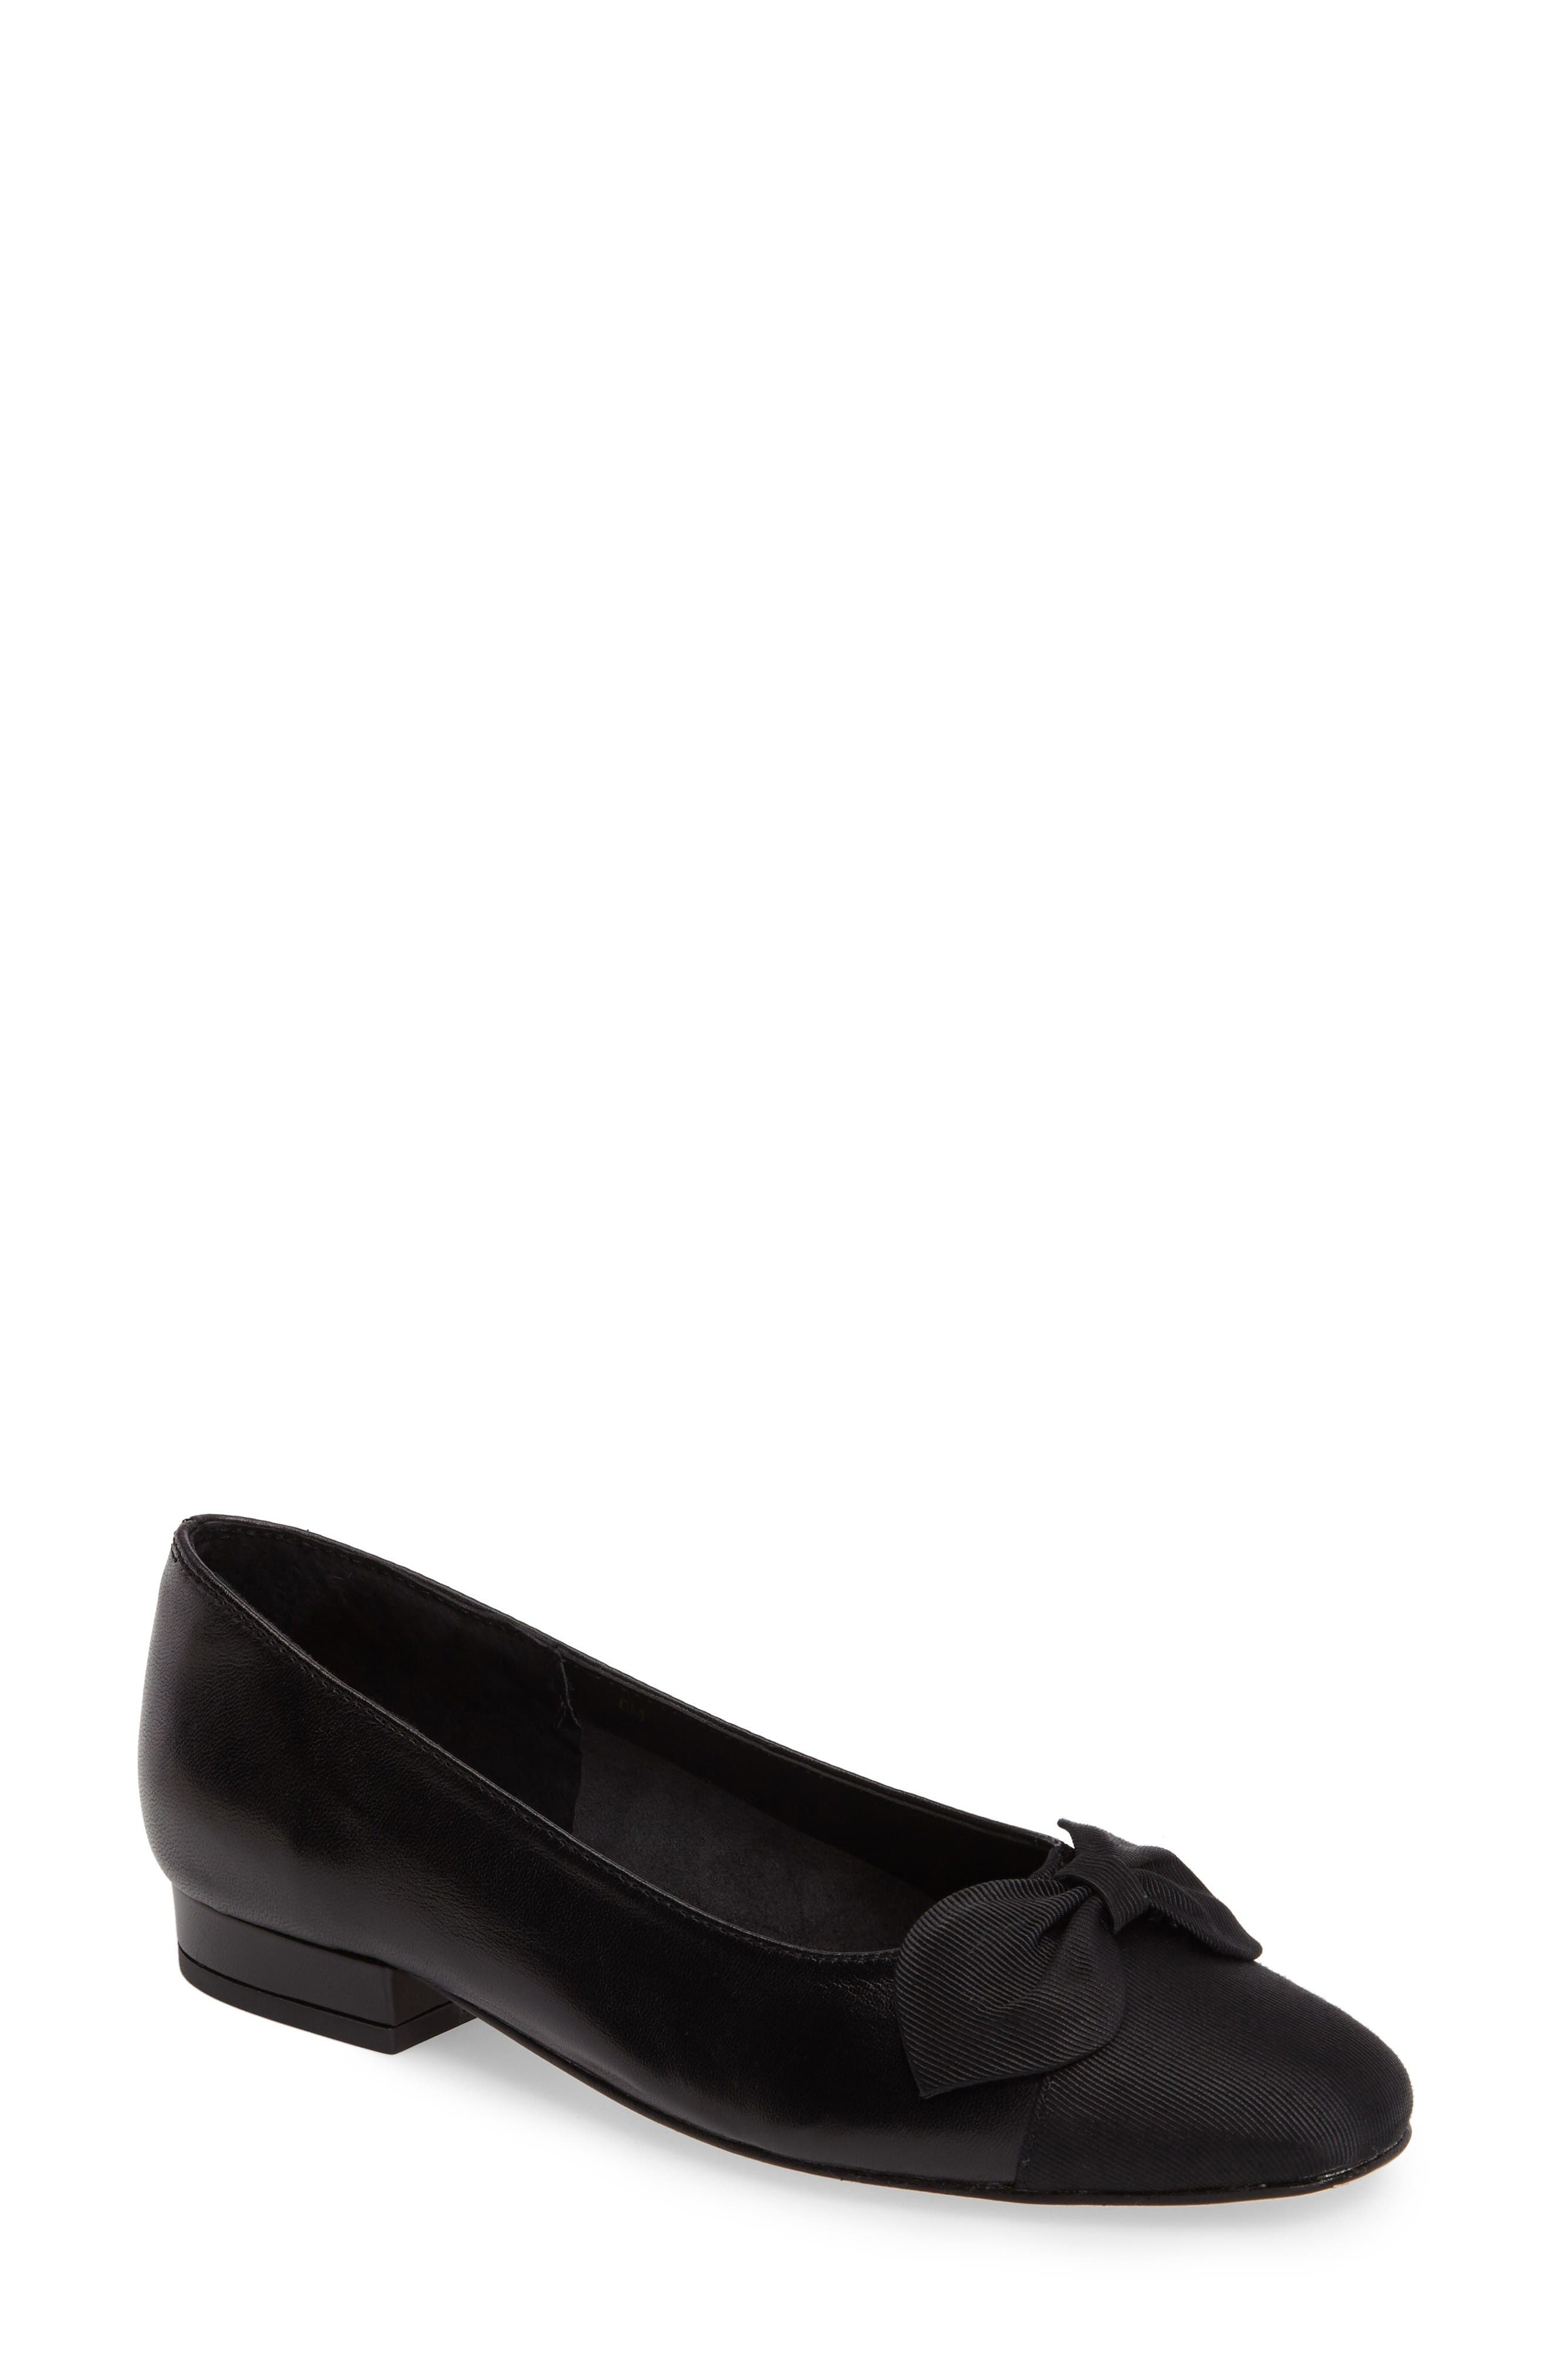 Alternate Image 1 Selected - VANELi Favor Bow Flat (Women)